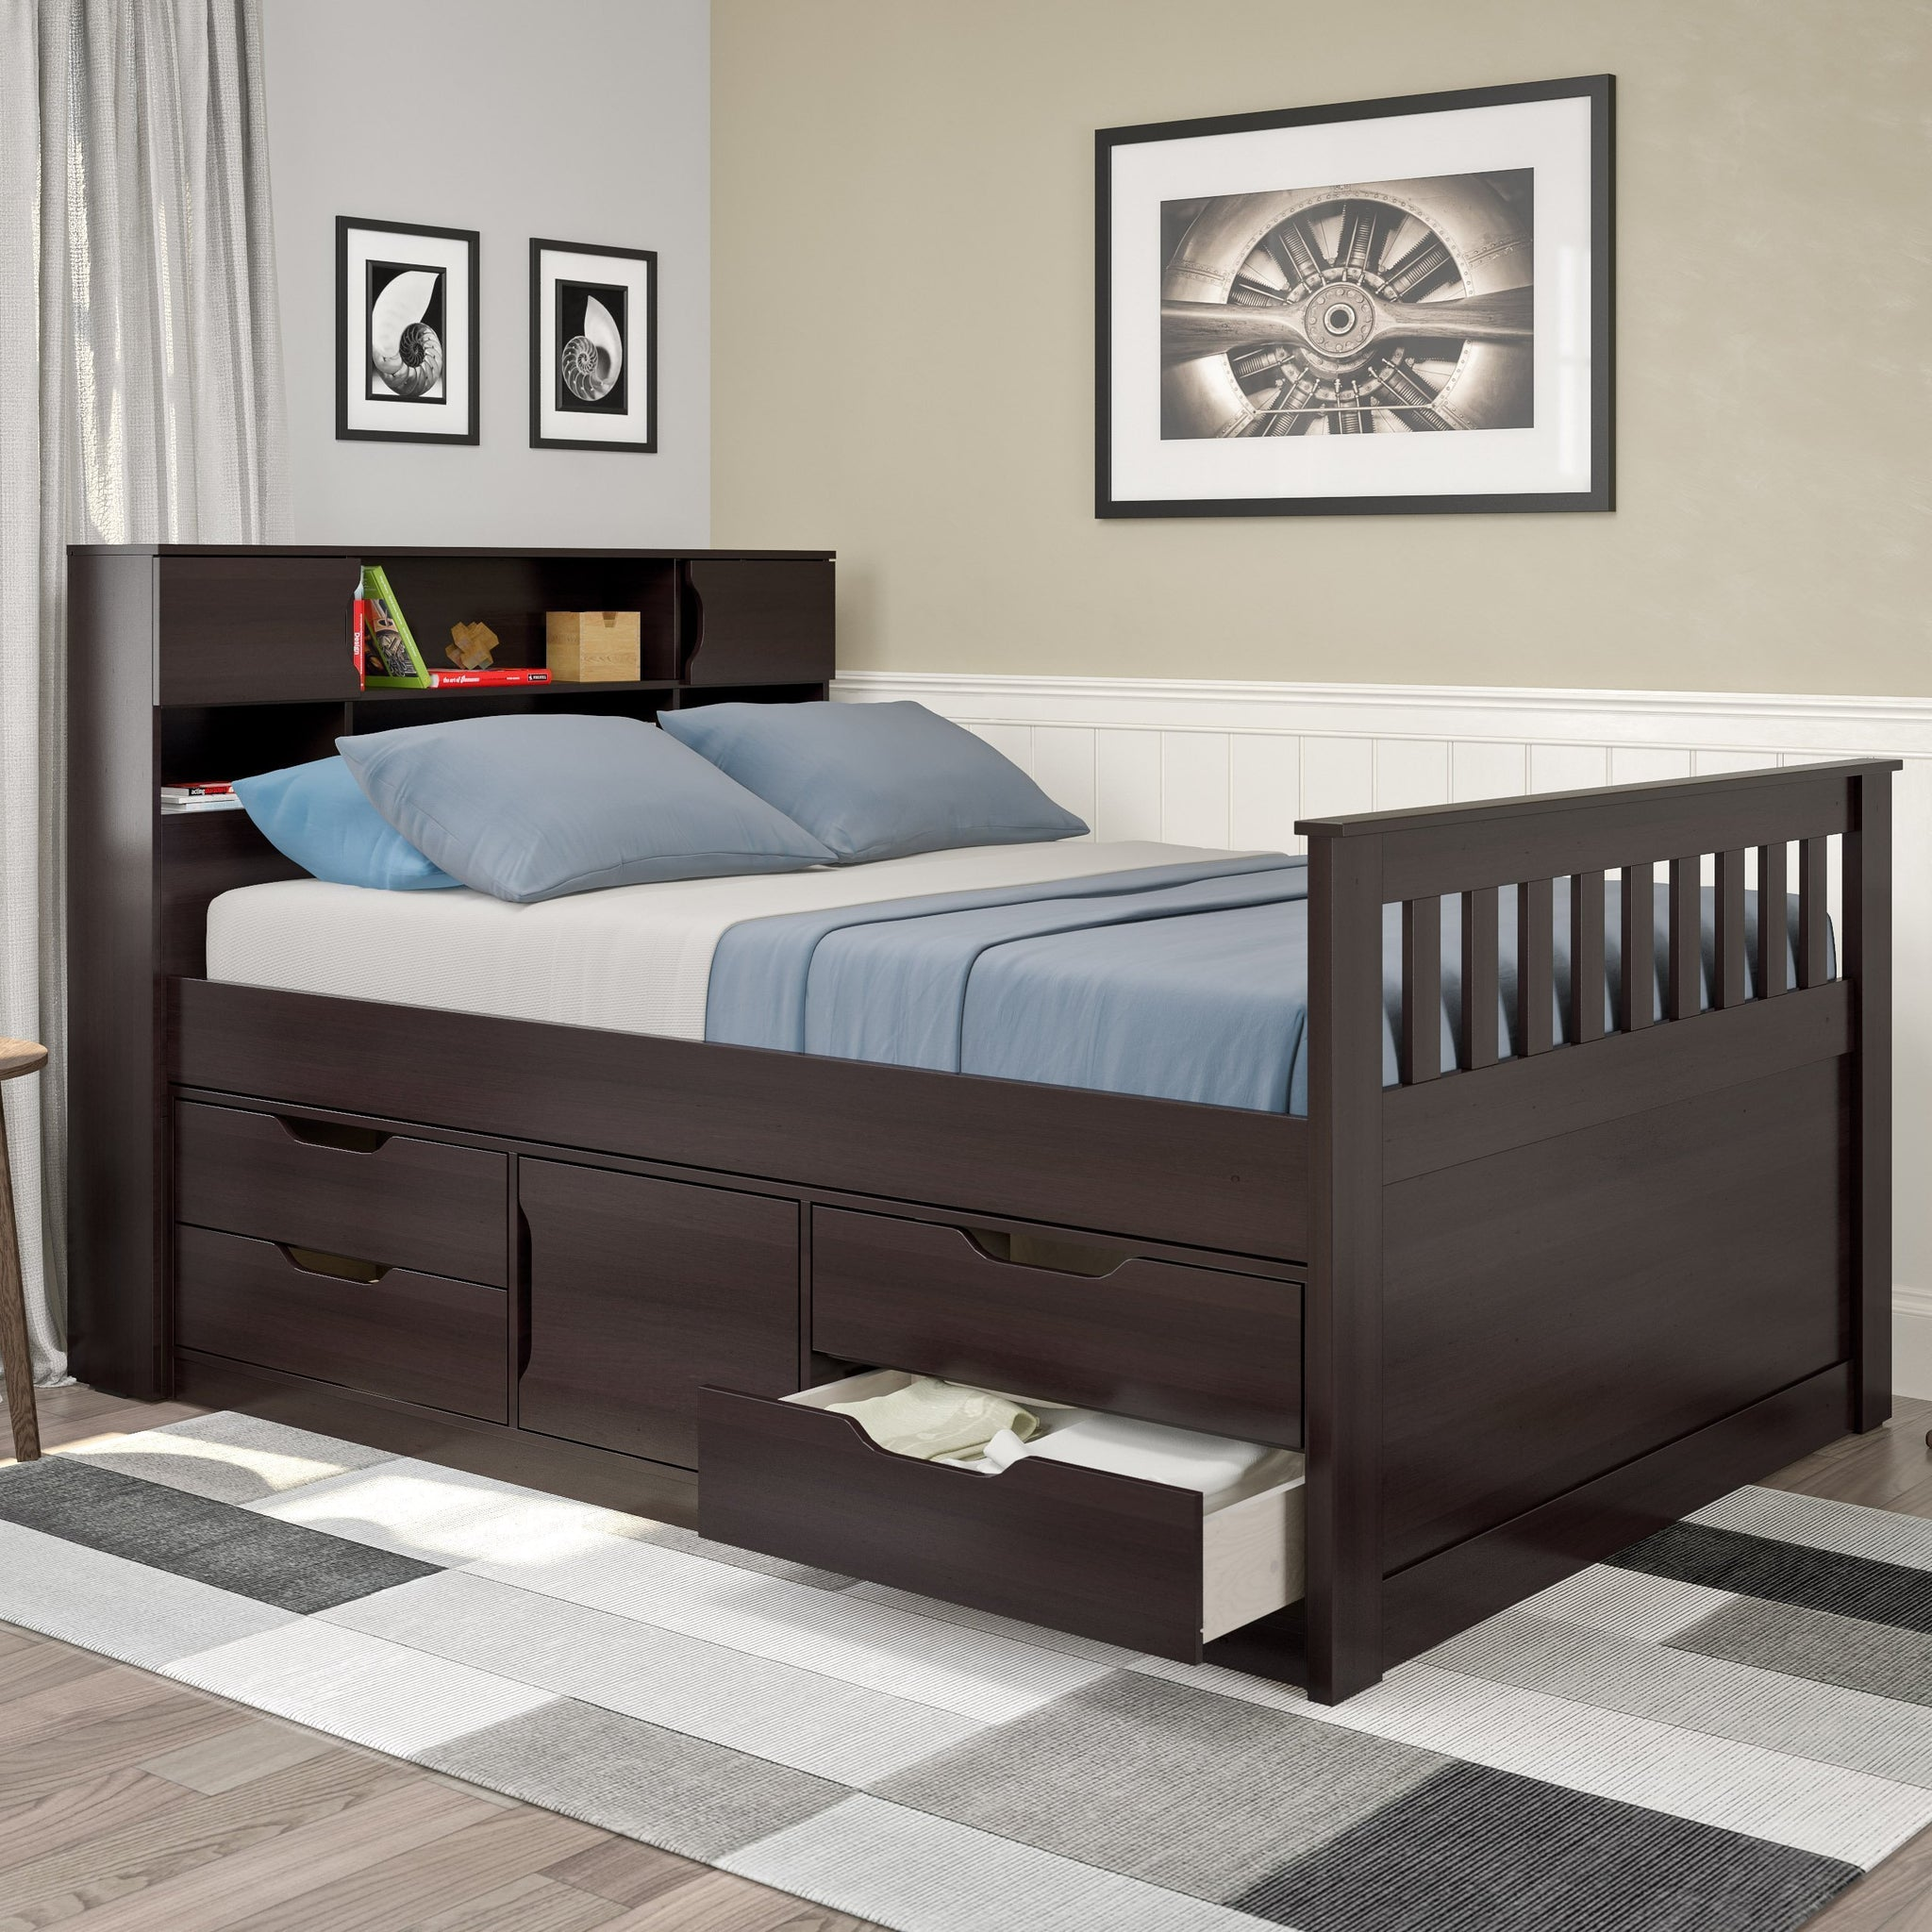 Madison Captain's Bed Full/Double - *CLEARANCE ...